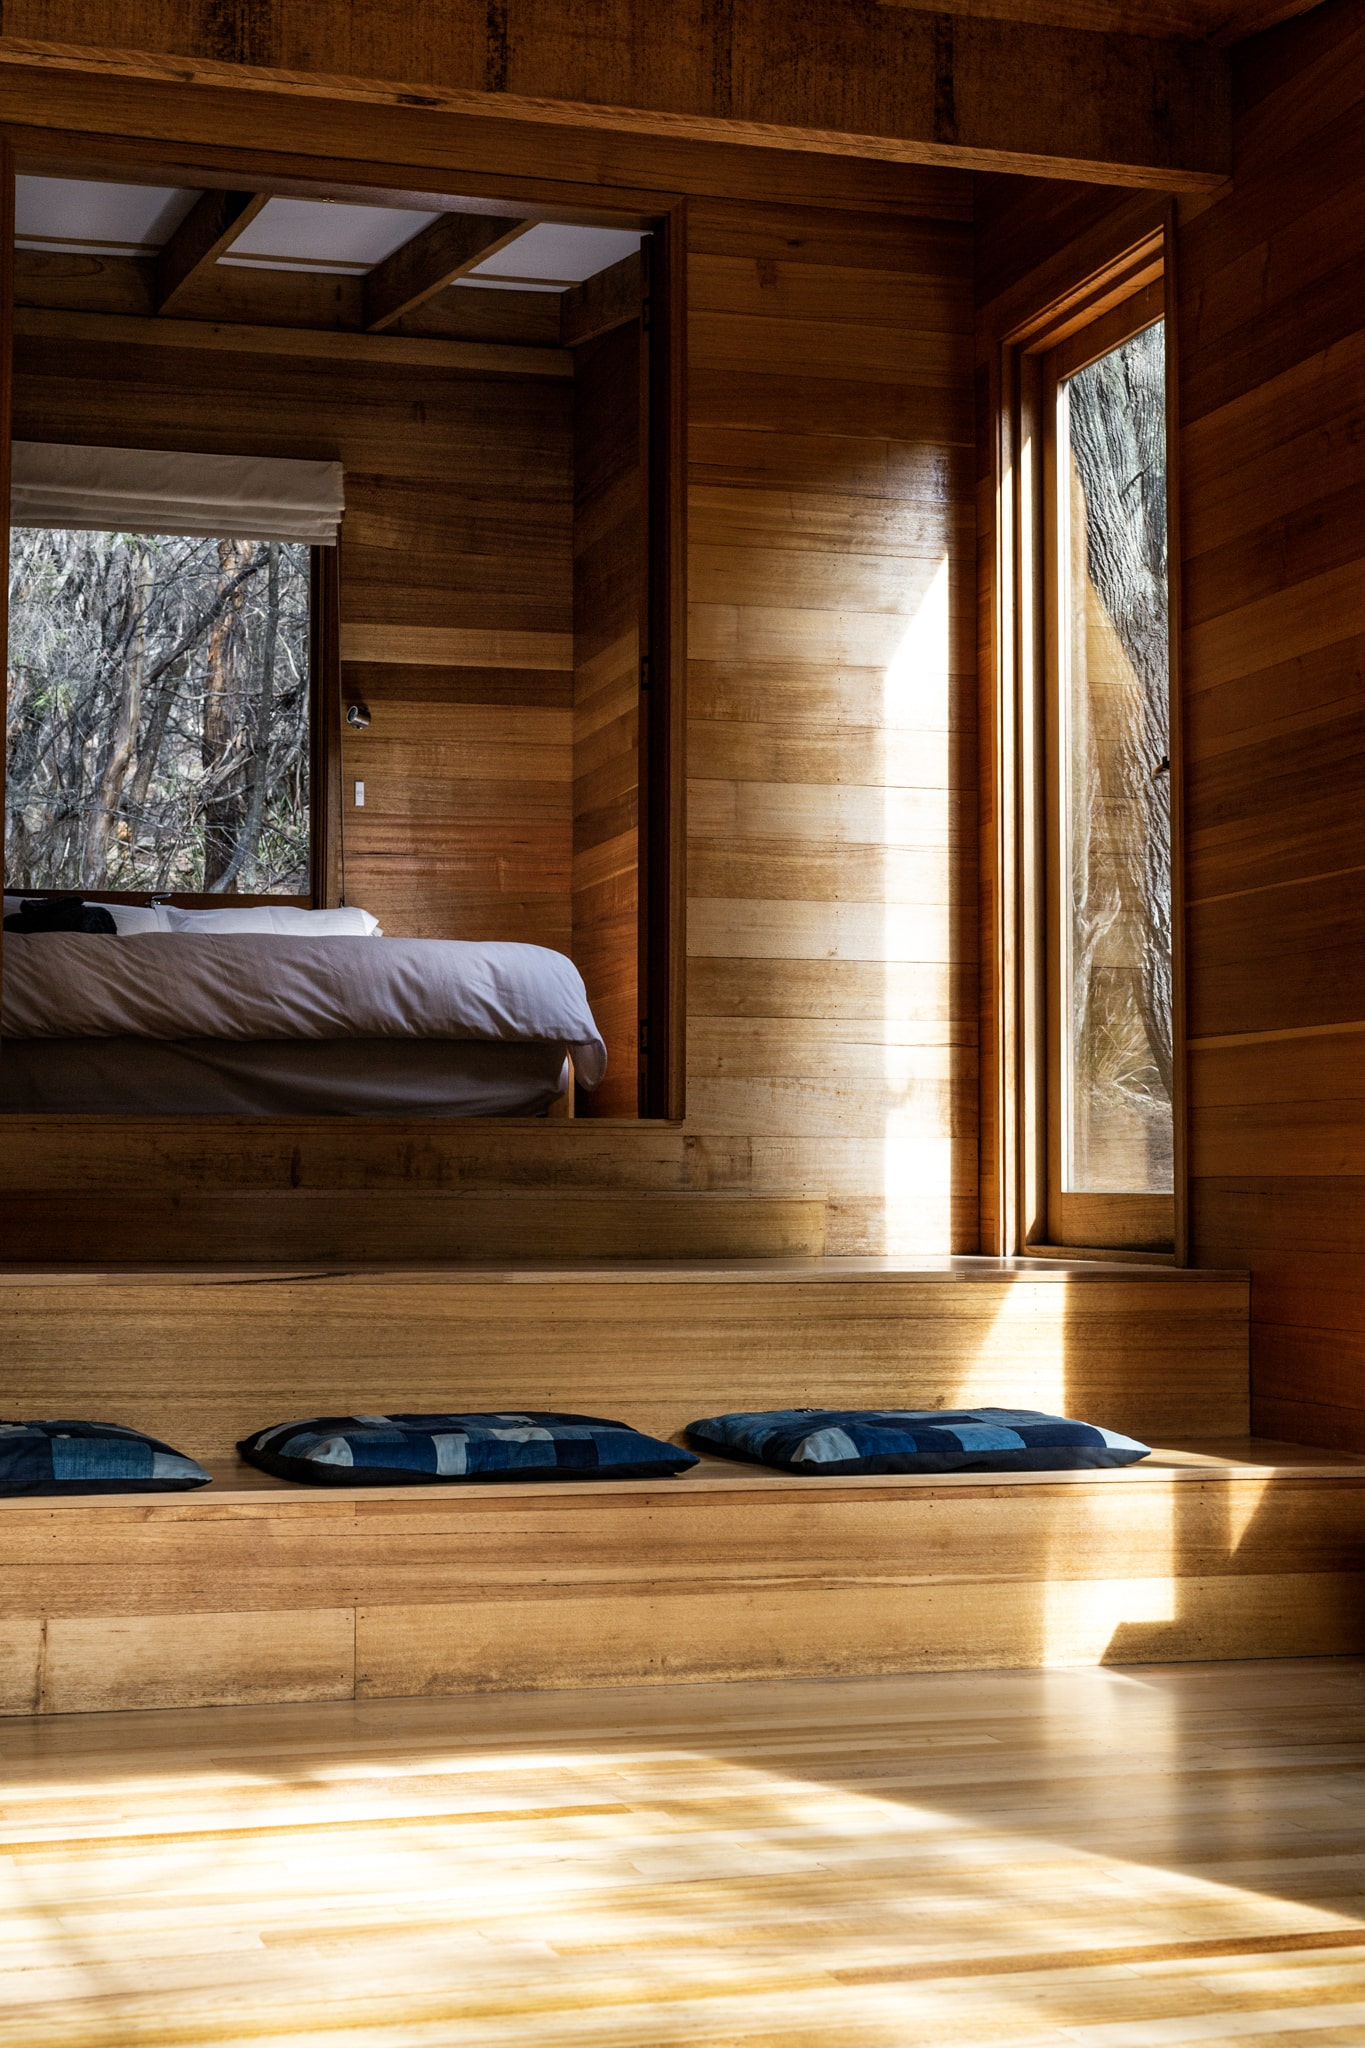 And The Lodge Has Since Been Awarded By The Royal Australian Institute Of Architecture For Its Sustainability